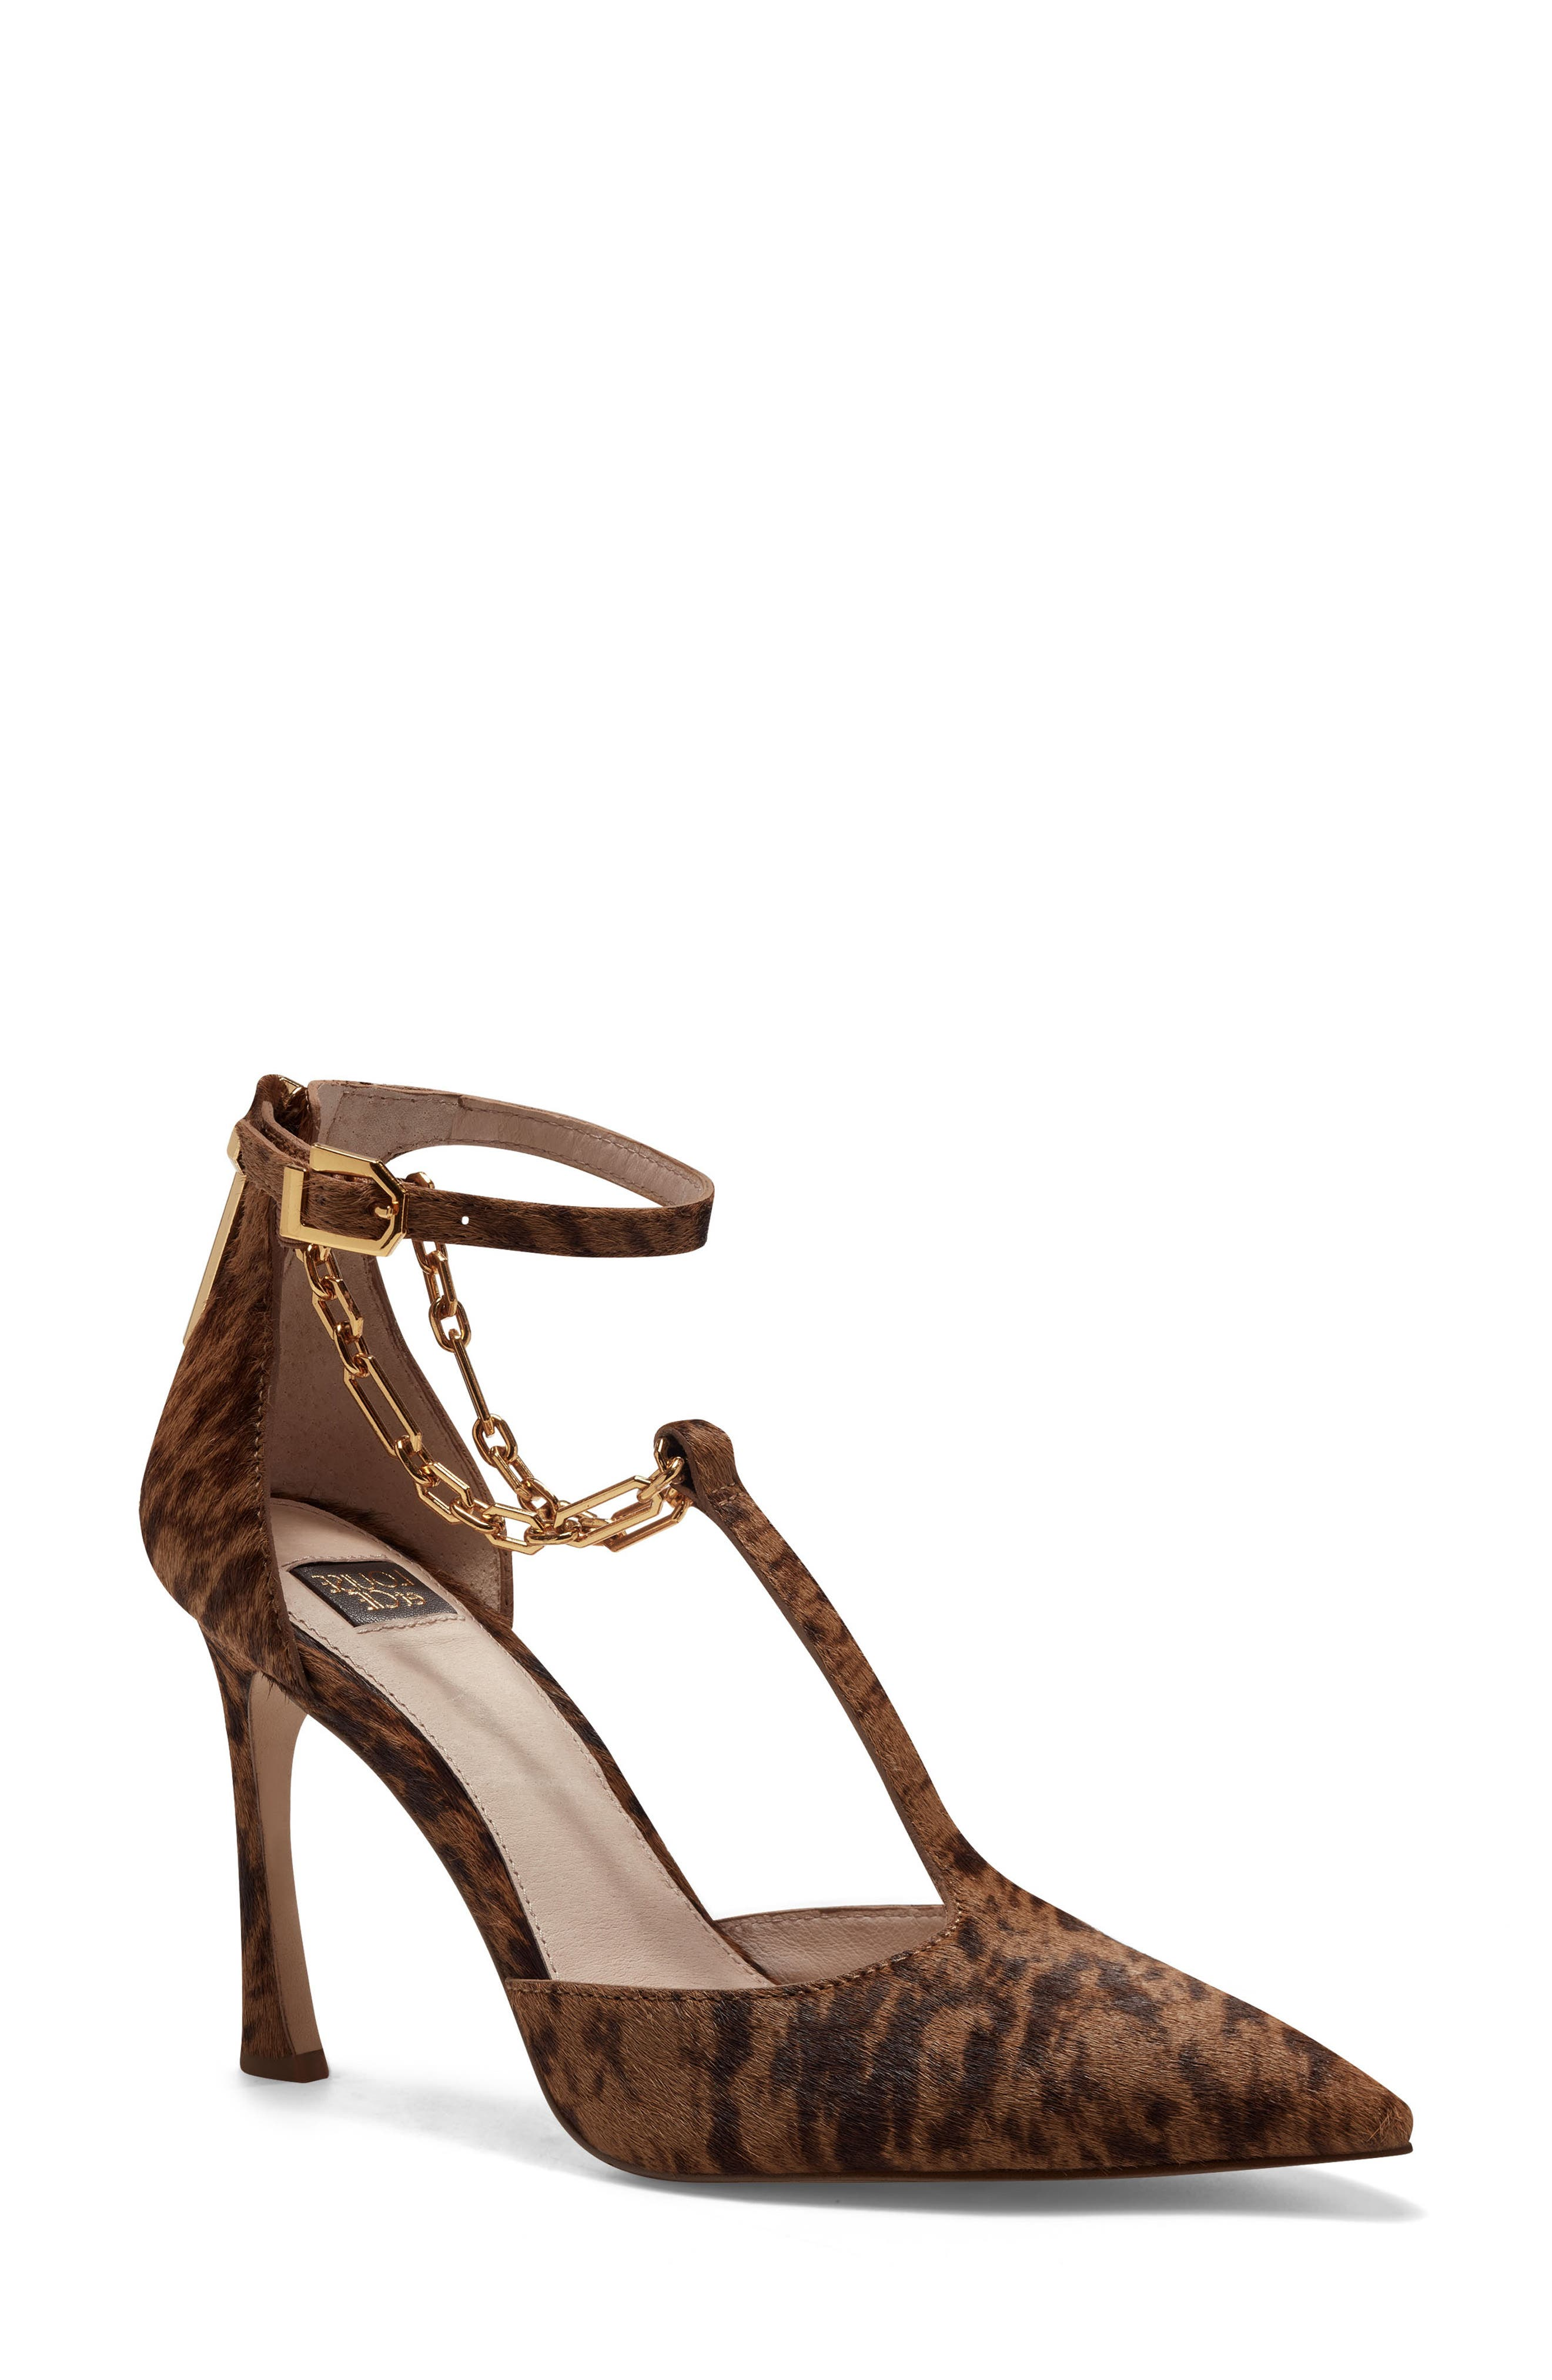 Taite3 Ankle Strap Pointed Toe Pump